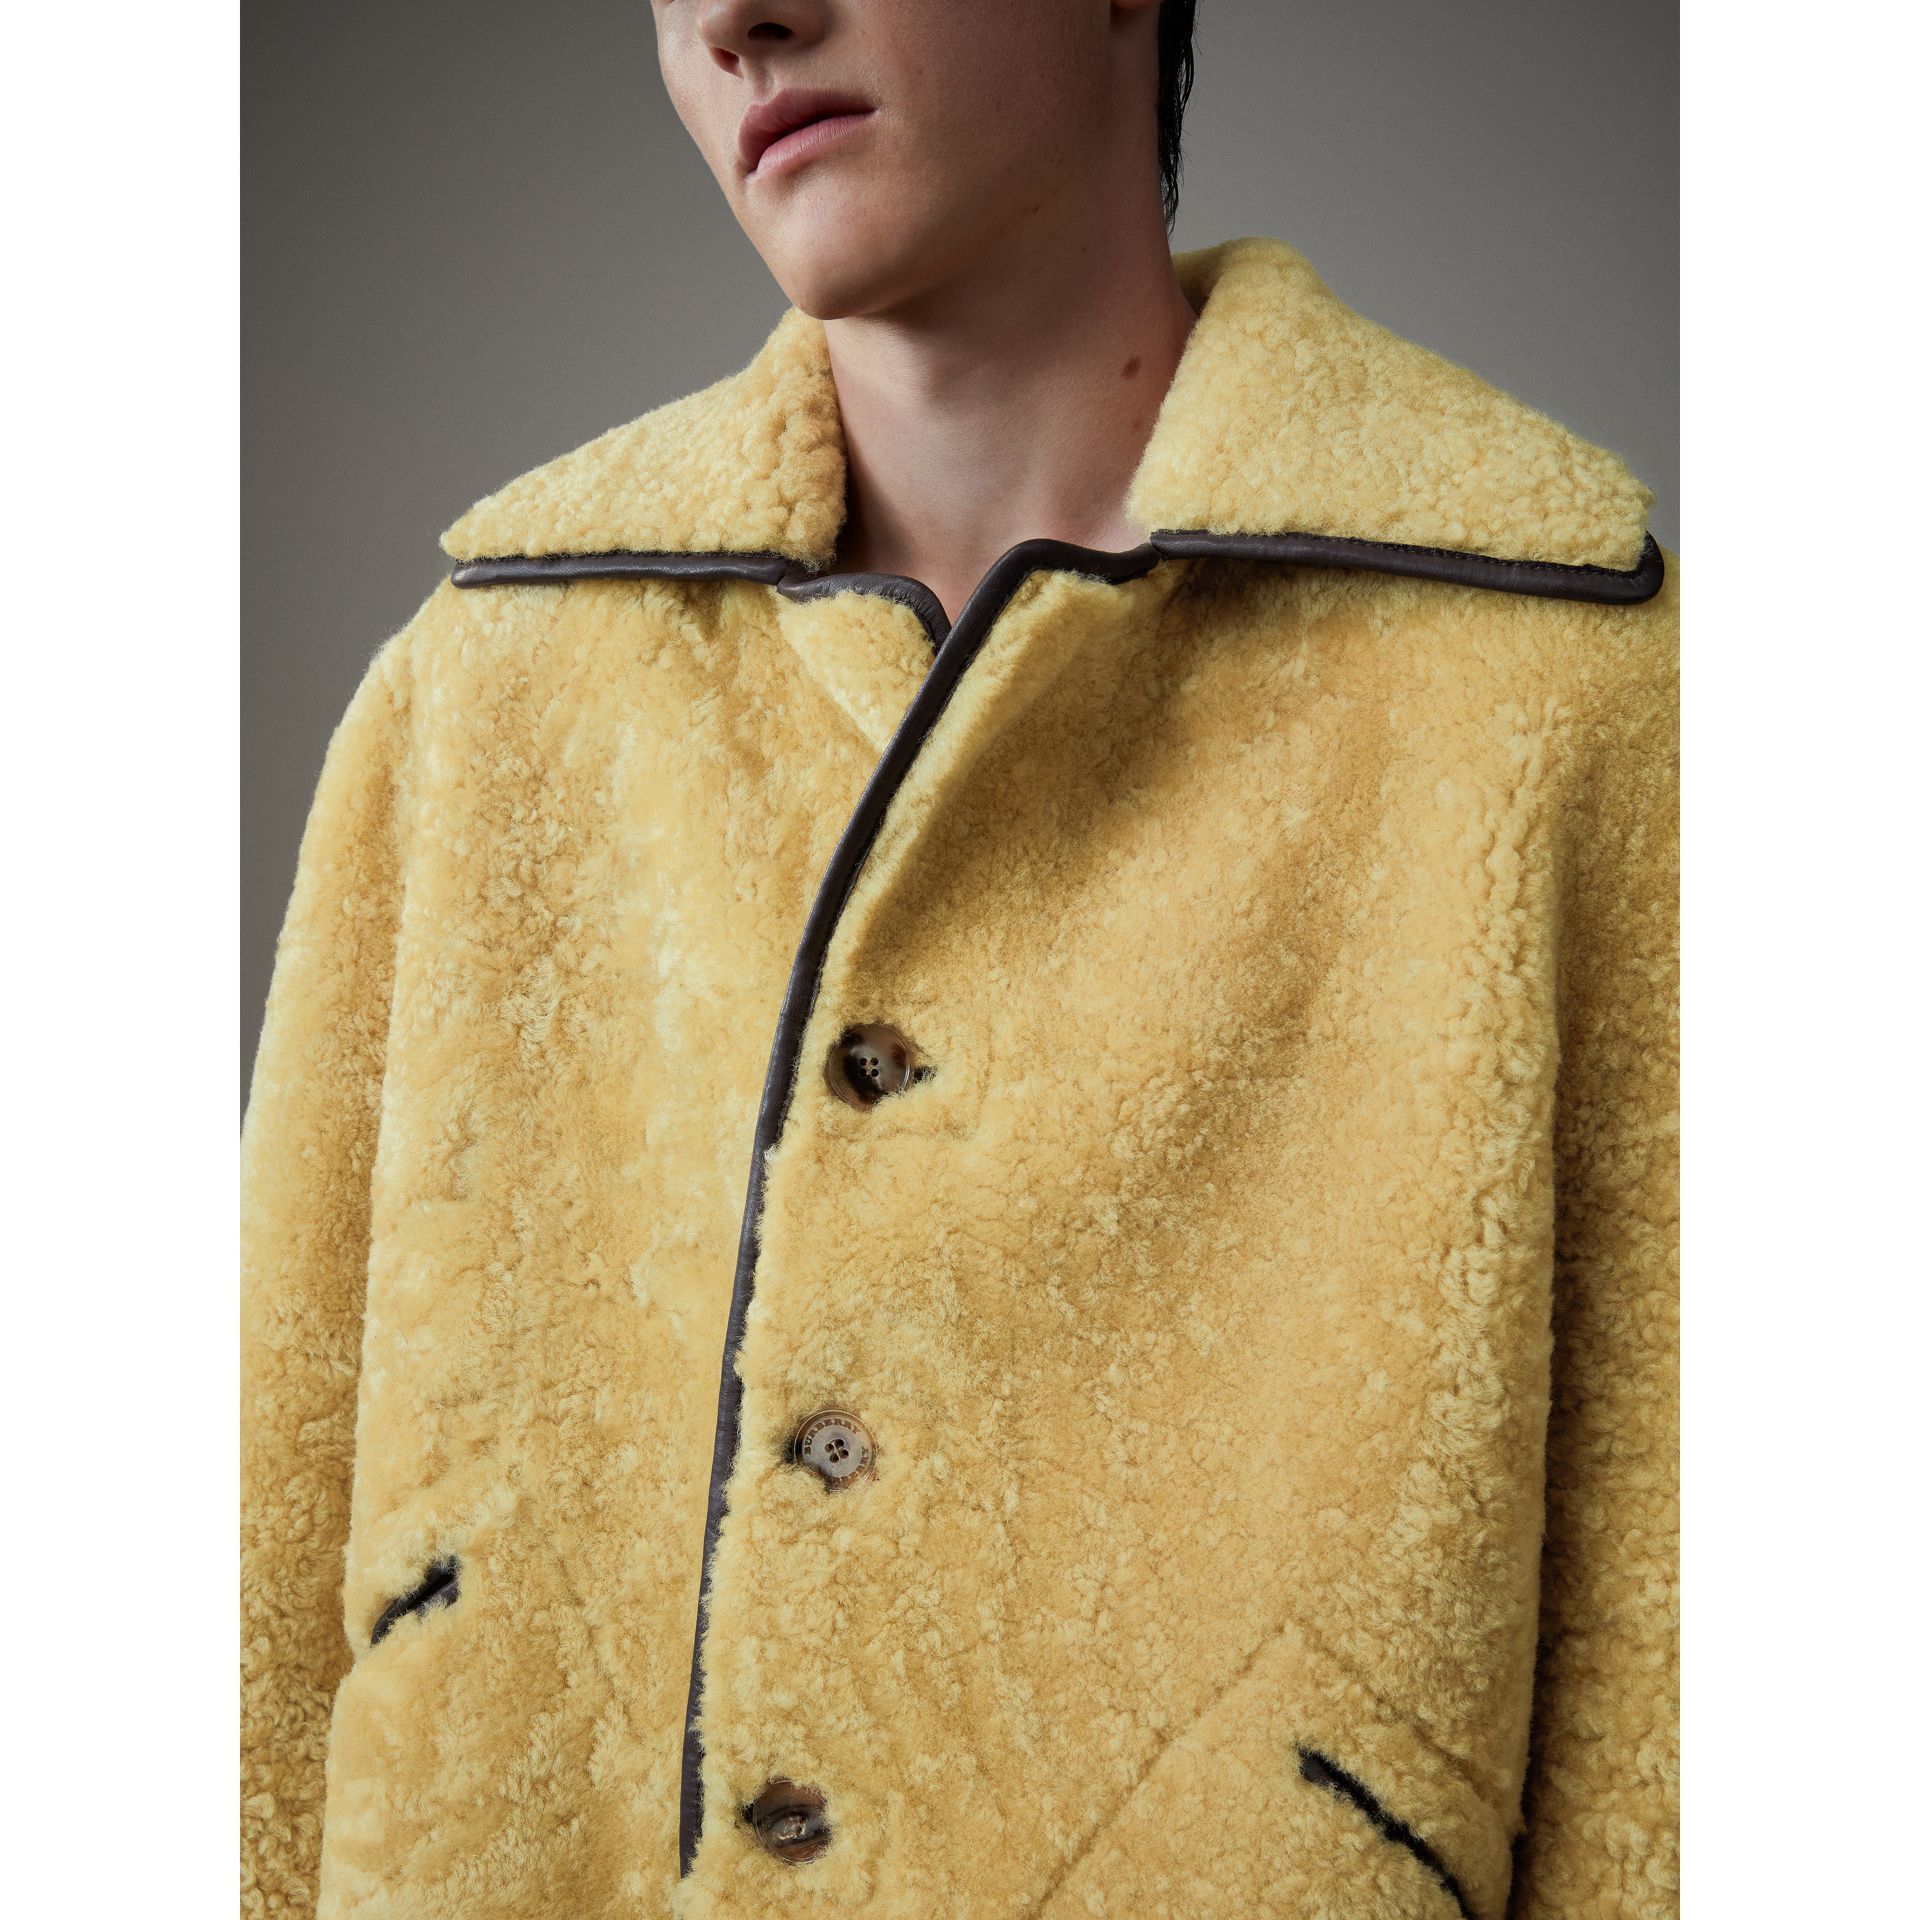 Relaxed Fit Shearling and Lambskin Jacket in Chocolate/light Citrus - Men | Burberry Australia - gallery image 1